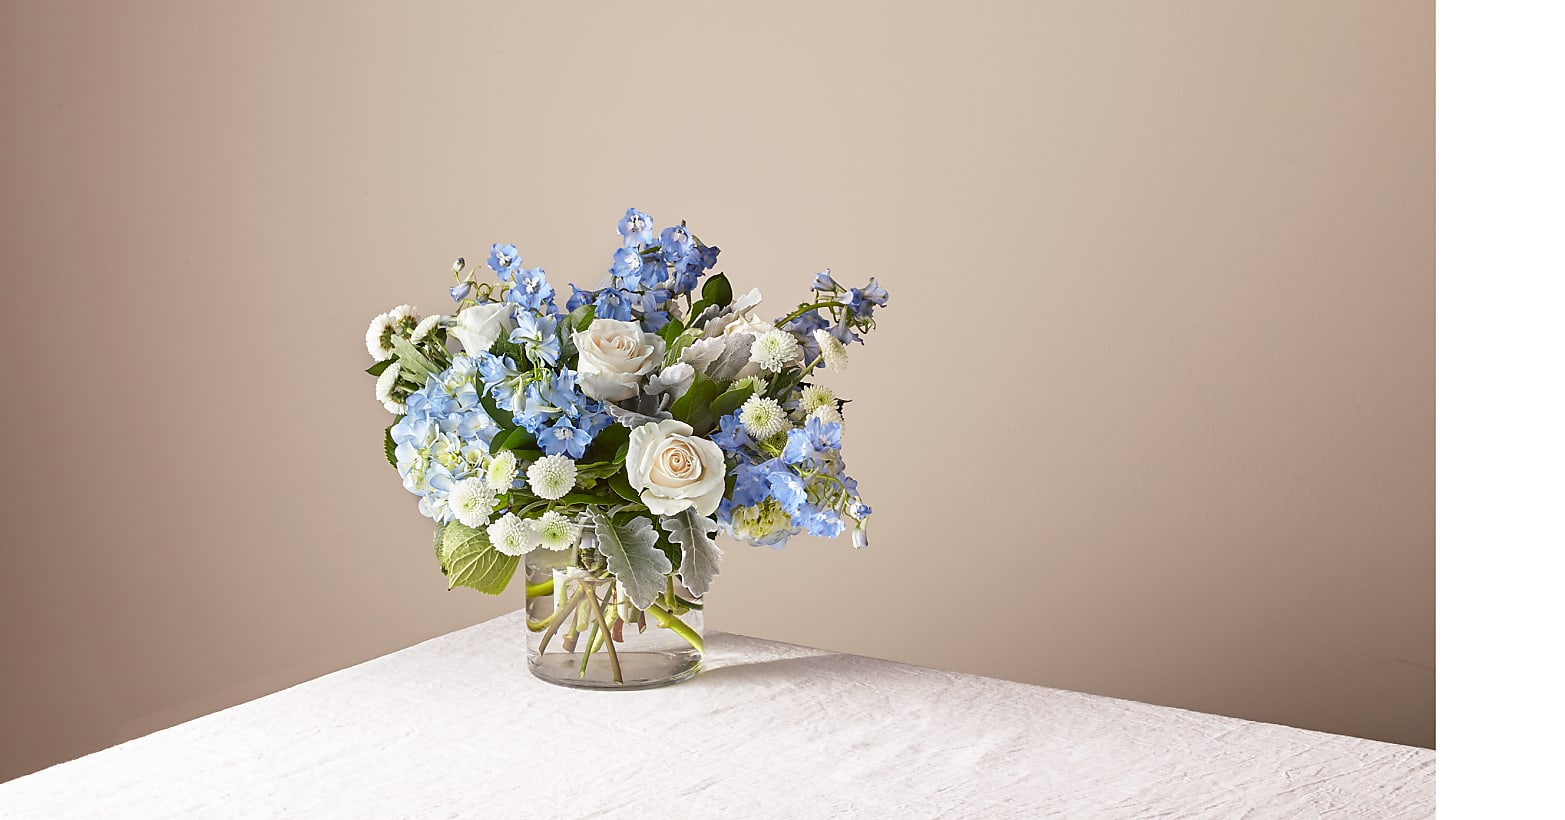 Clear Skies Bouquet - Image 1 Of 4